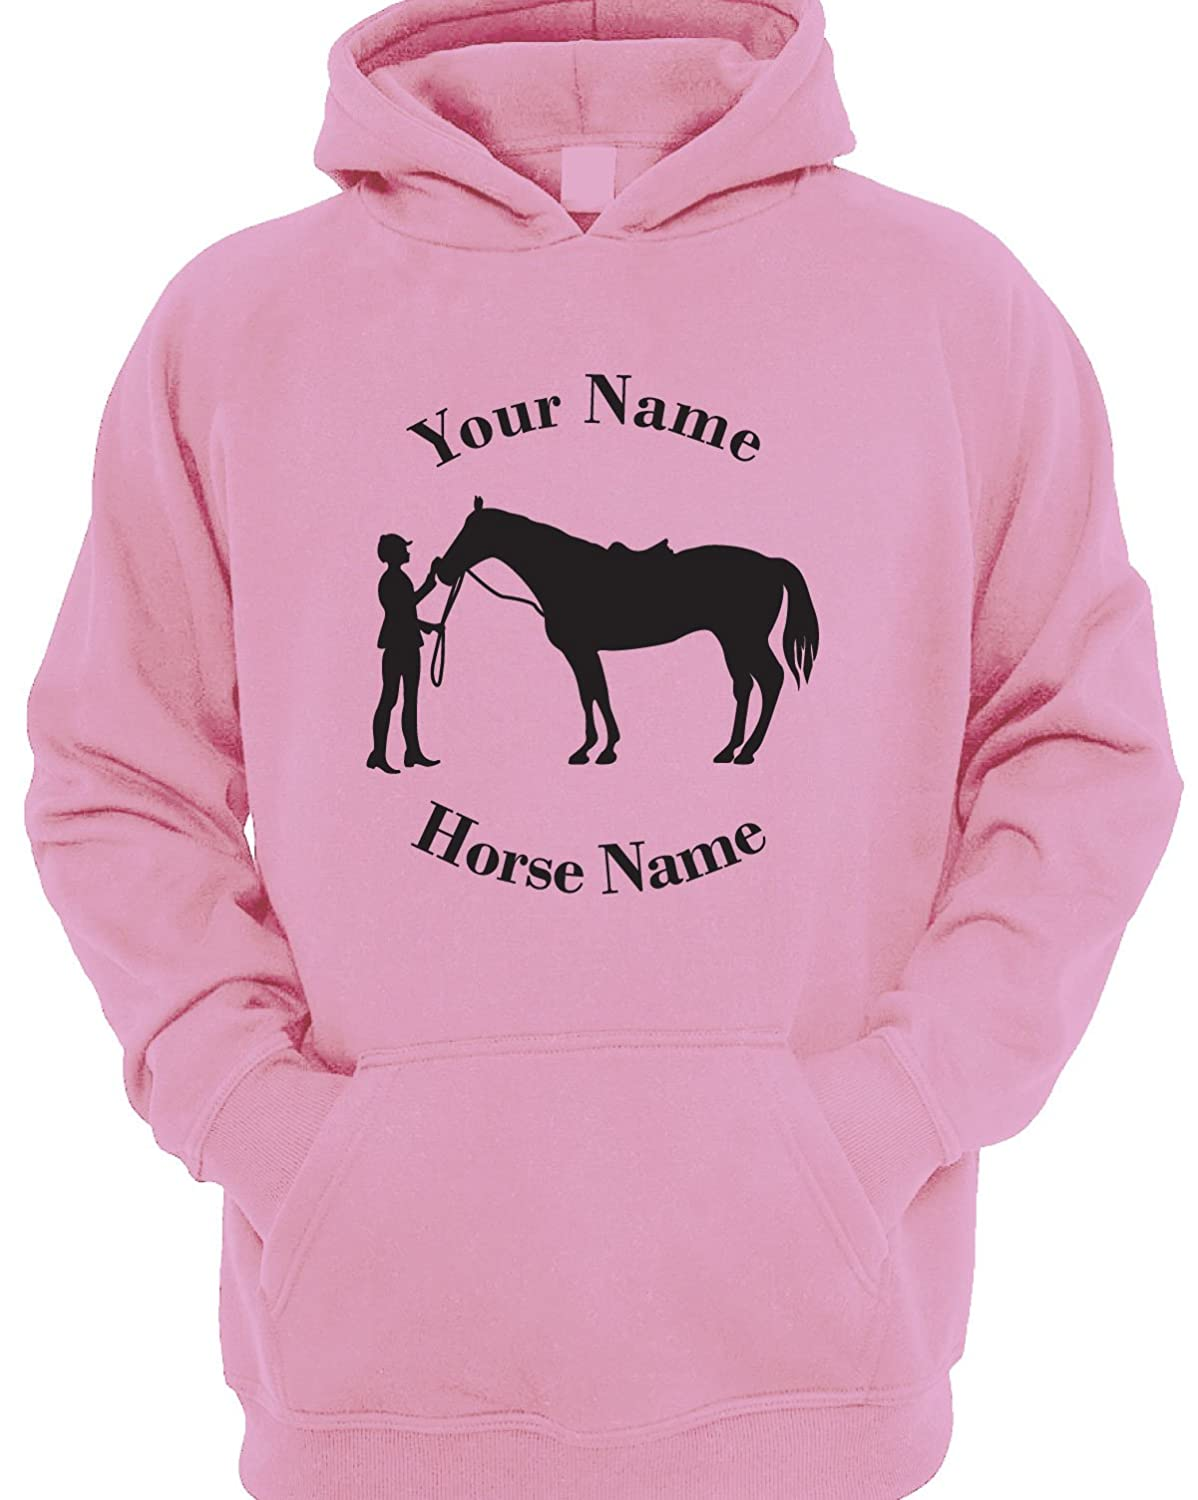 Personalised Rider and Horse Children's Horse Riding Hoodie 42188